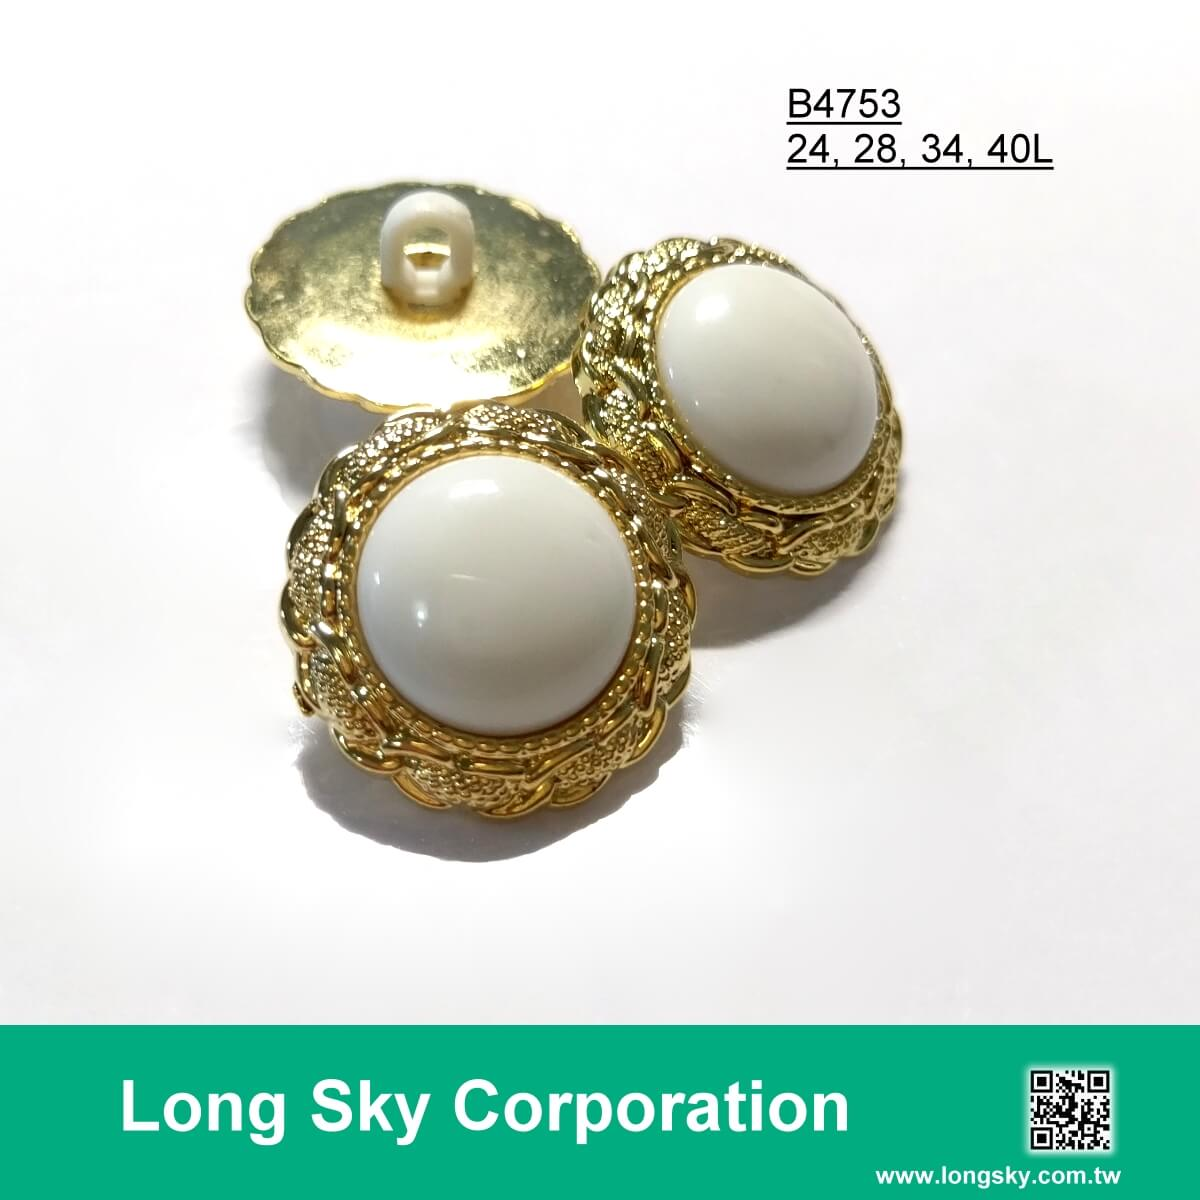 (#B4753/24L,28L,34L,40L) 2-piece combined gold with white center garment button